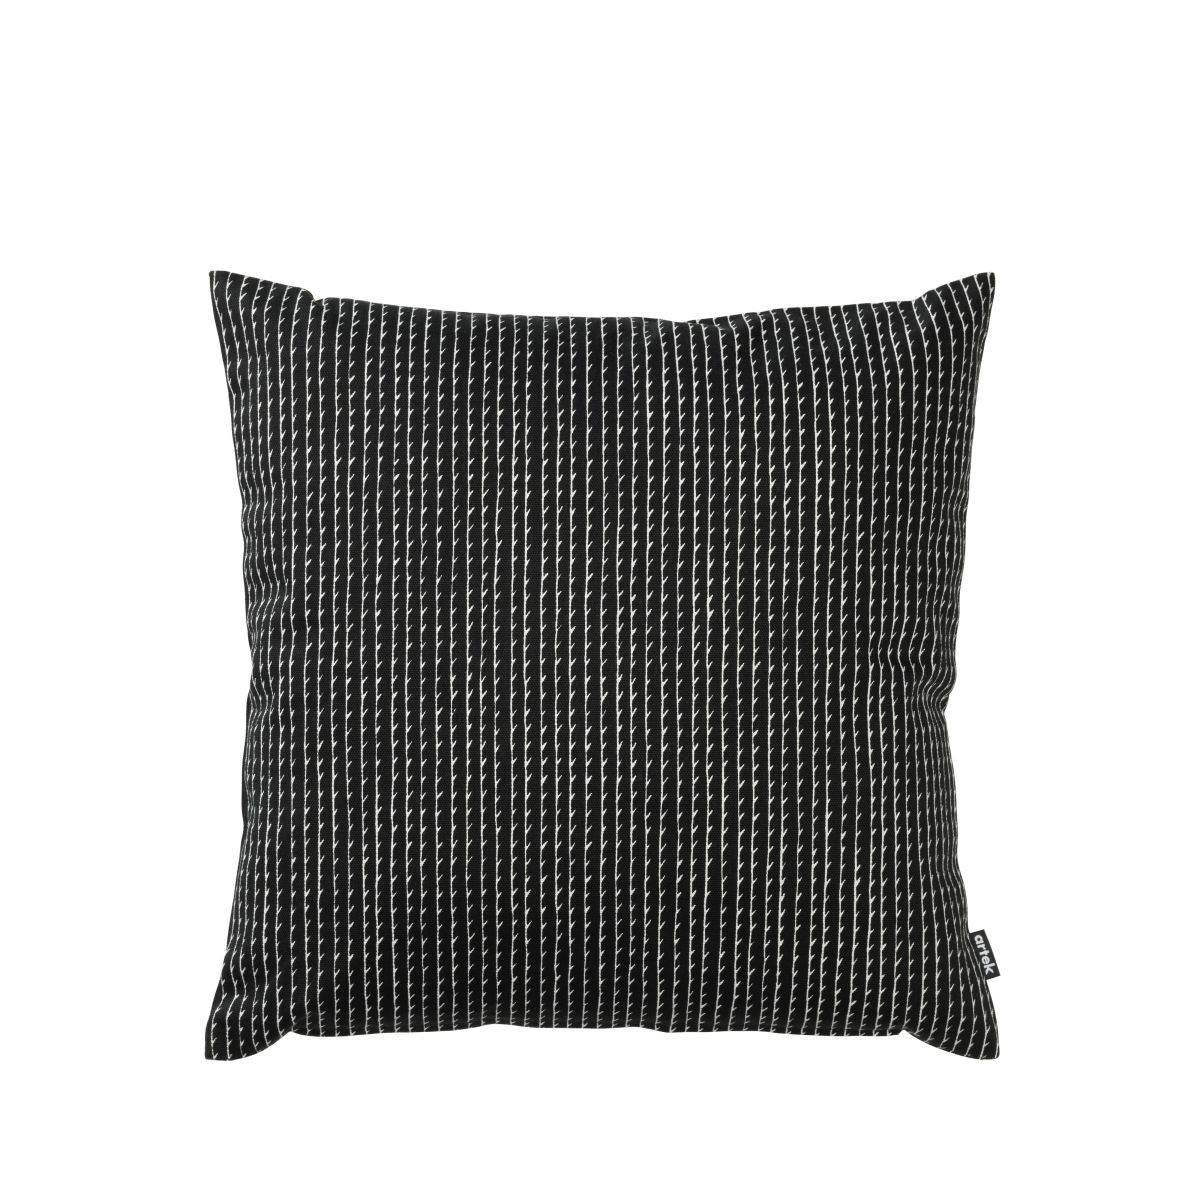 Rivi Cushion Cover black _ white small_F_web